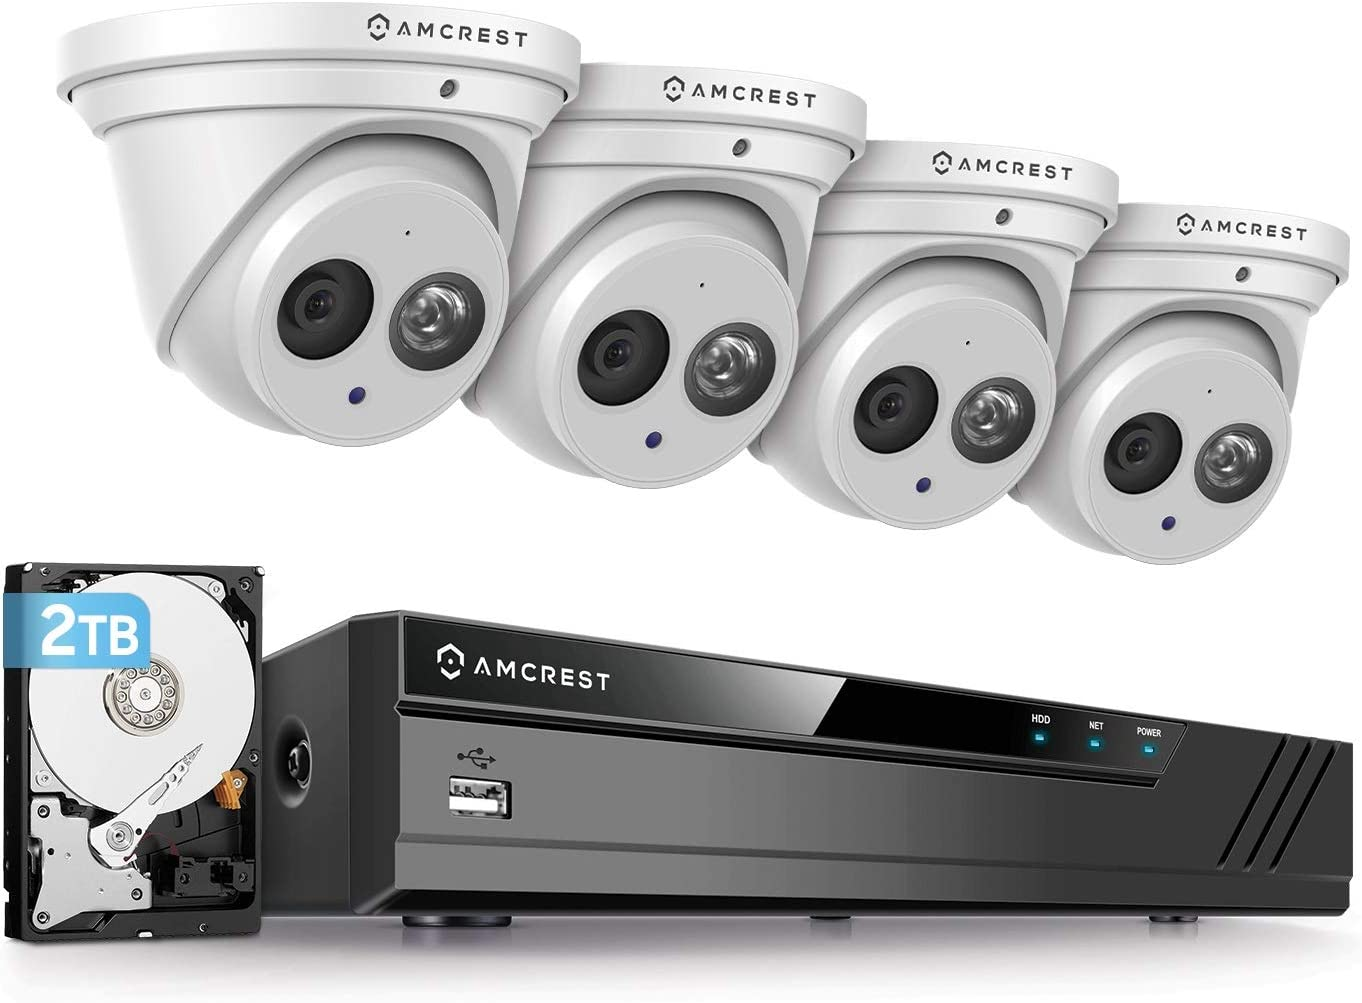 Amcrest 4K Security Camera System w/ 4K 8CH PoE NVR, (4) x 4K (8-Megapixel) IP67 Weatherproof Metal Turret Dome POE IP Cameras (3840x2160), Pre-Installed 2TB HDD, NV4108E-IP8M-T2499EW4-2TB (White)